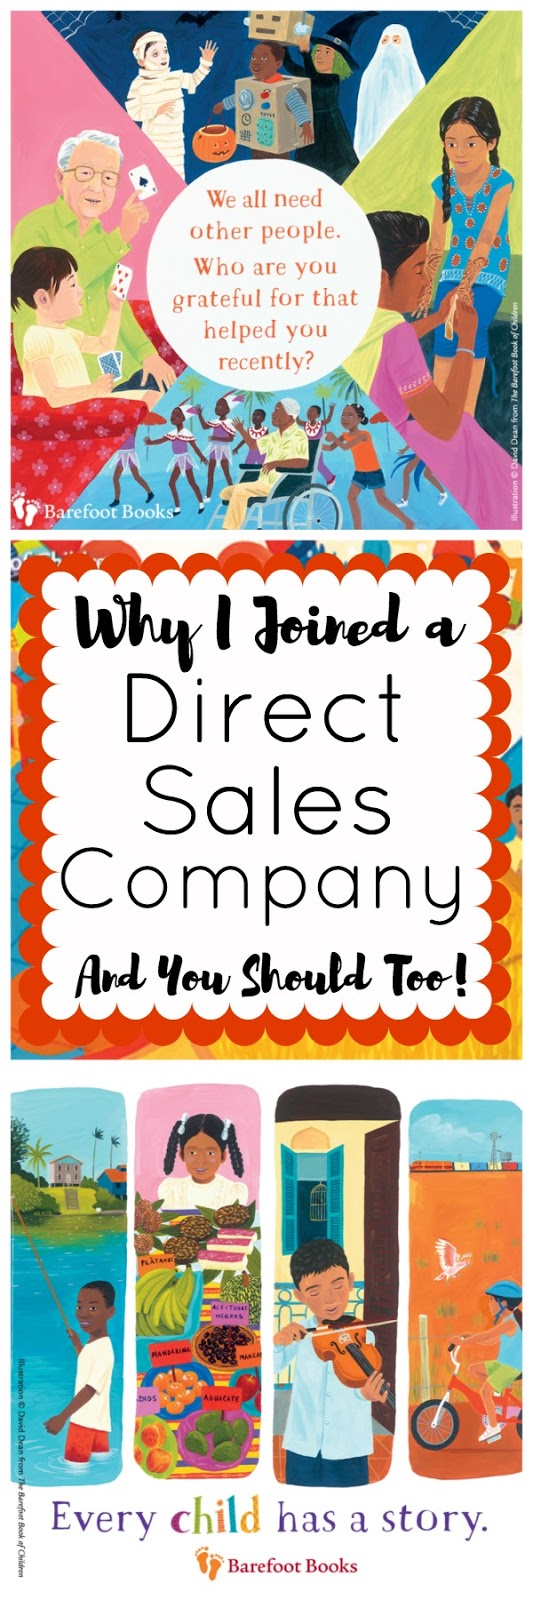 I can't believe I'm saying this, but I joined a direct sales company. What company did I join? What did they offer? What do they represent? Follow the link to read all about it!